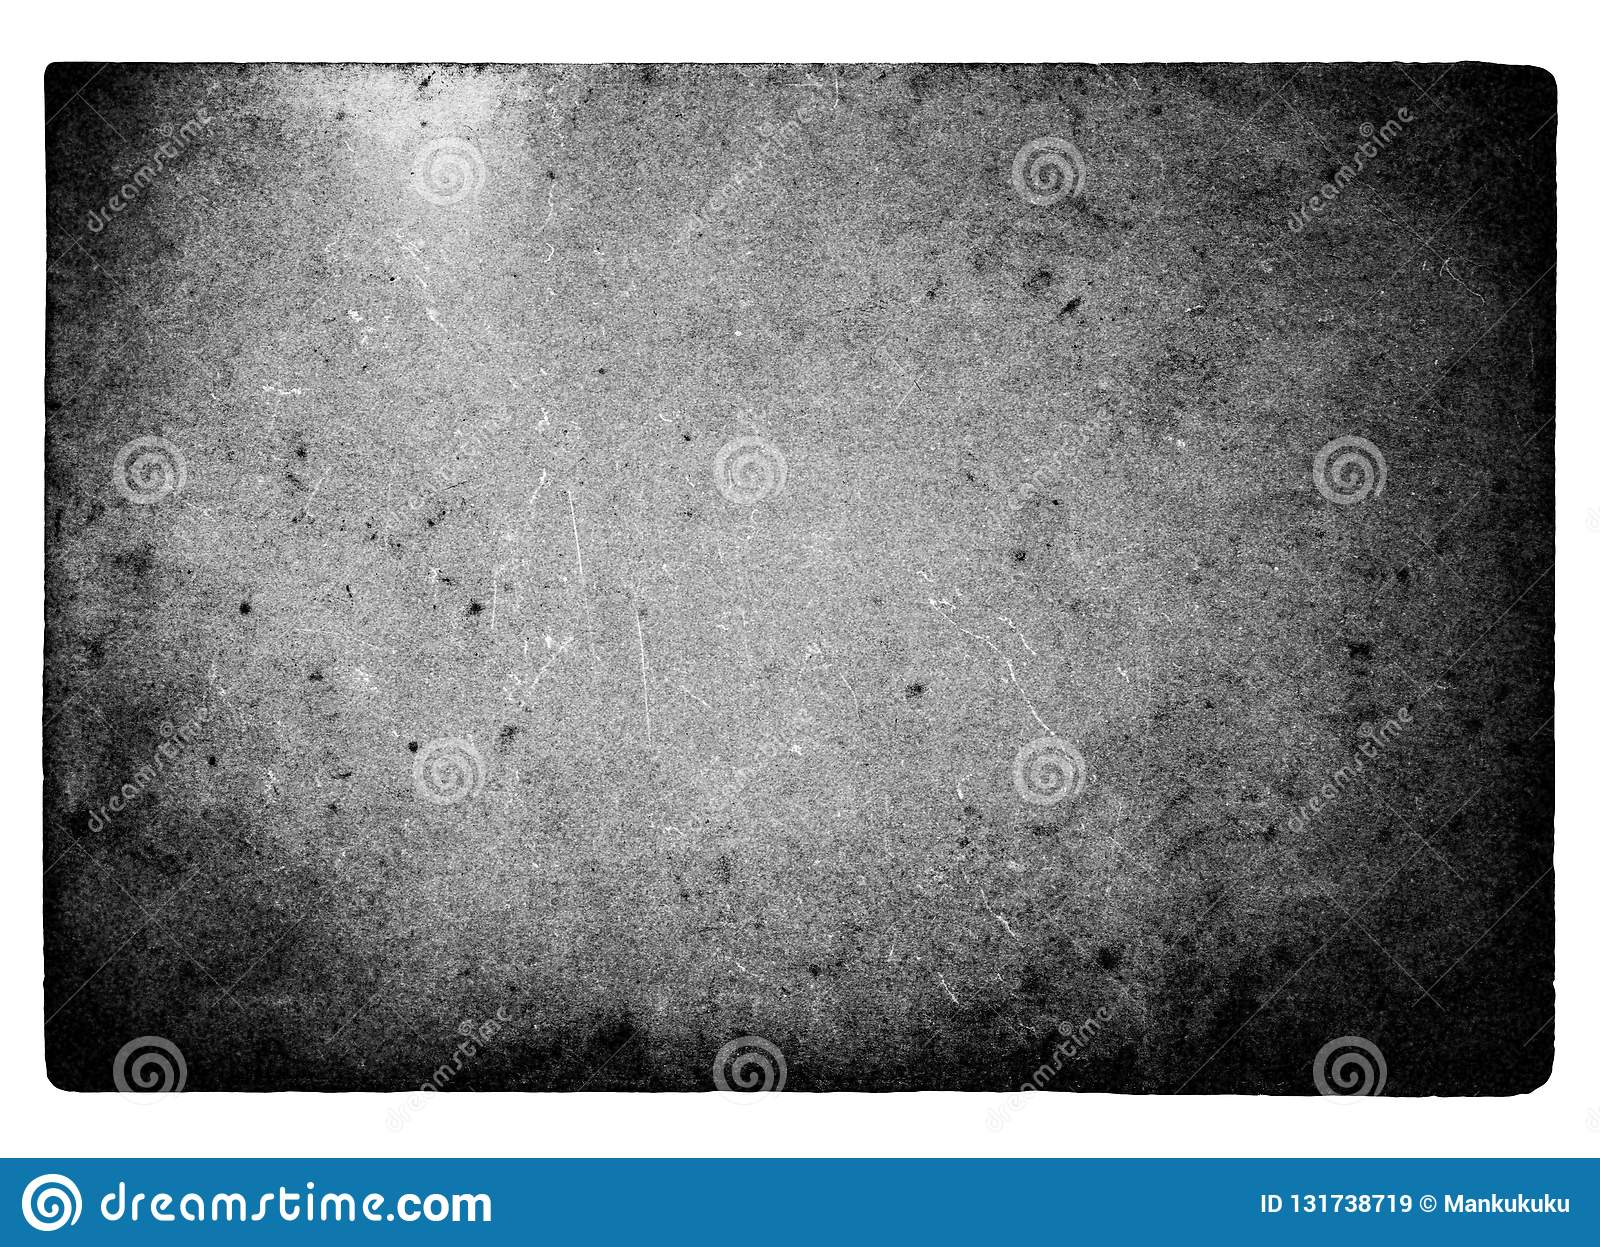 Black and white film frame with light leaks and grain isolated on white background.